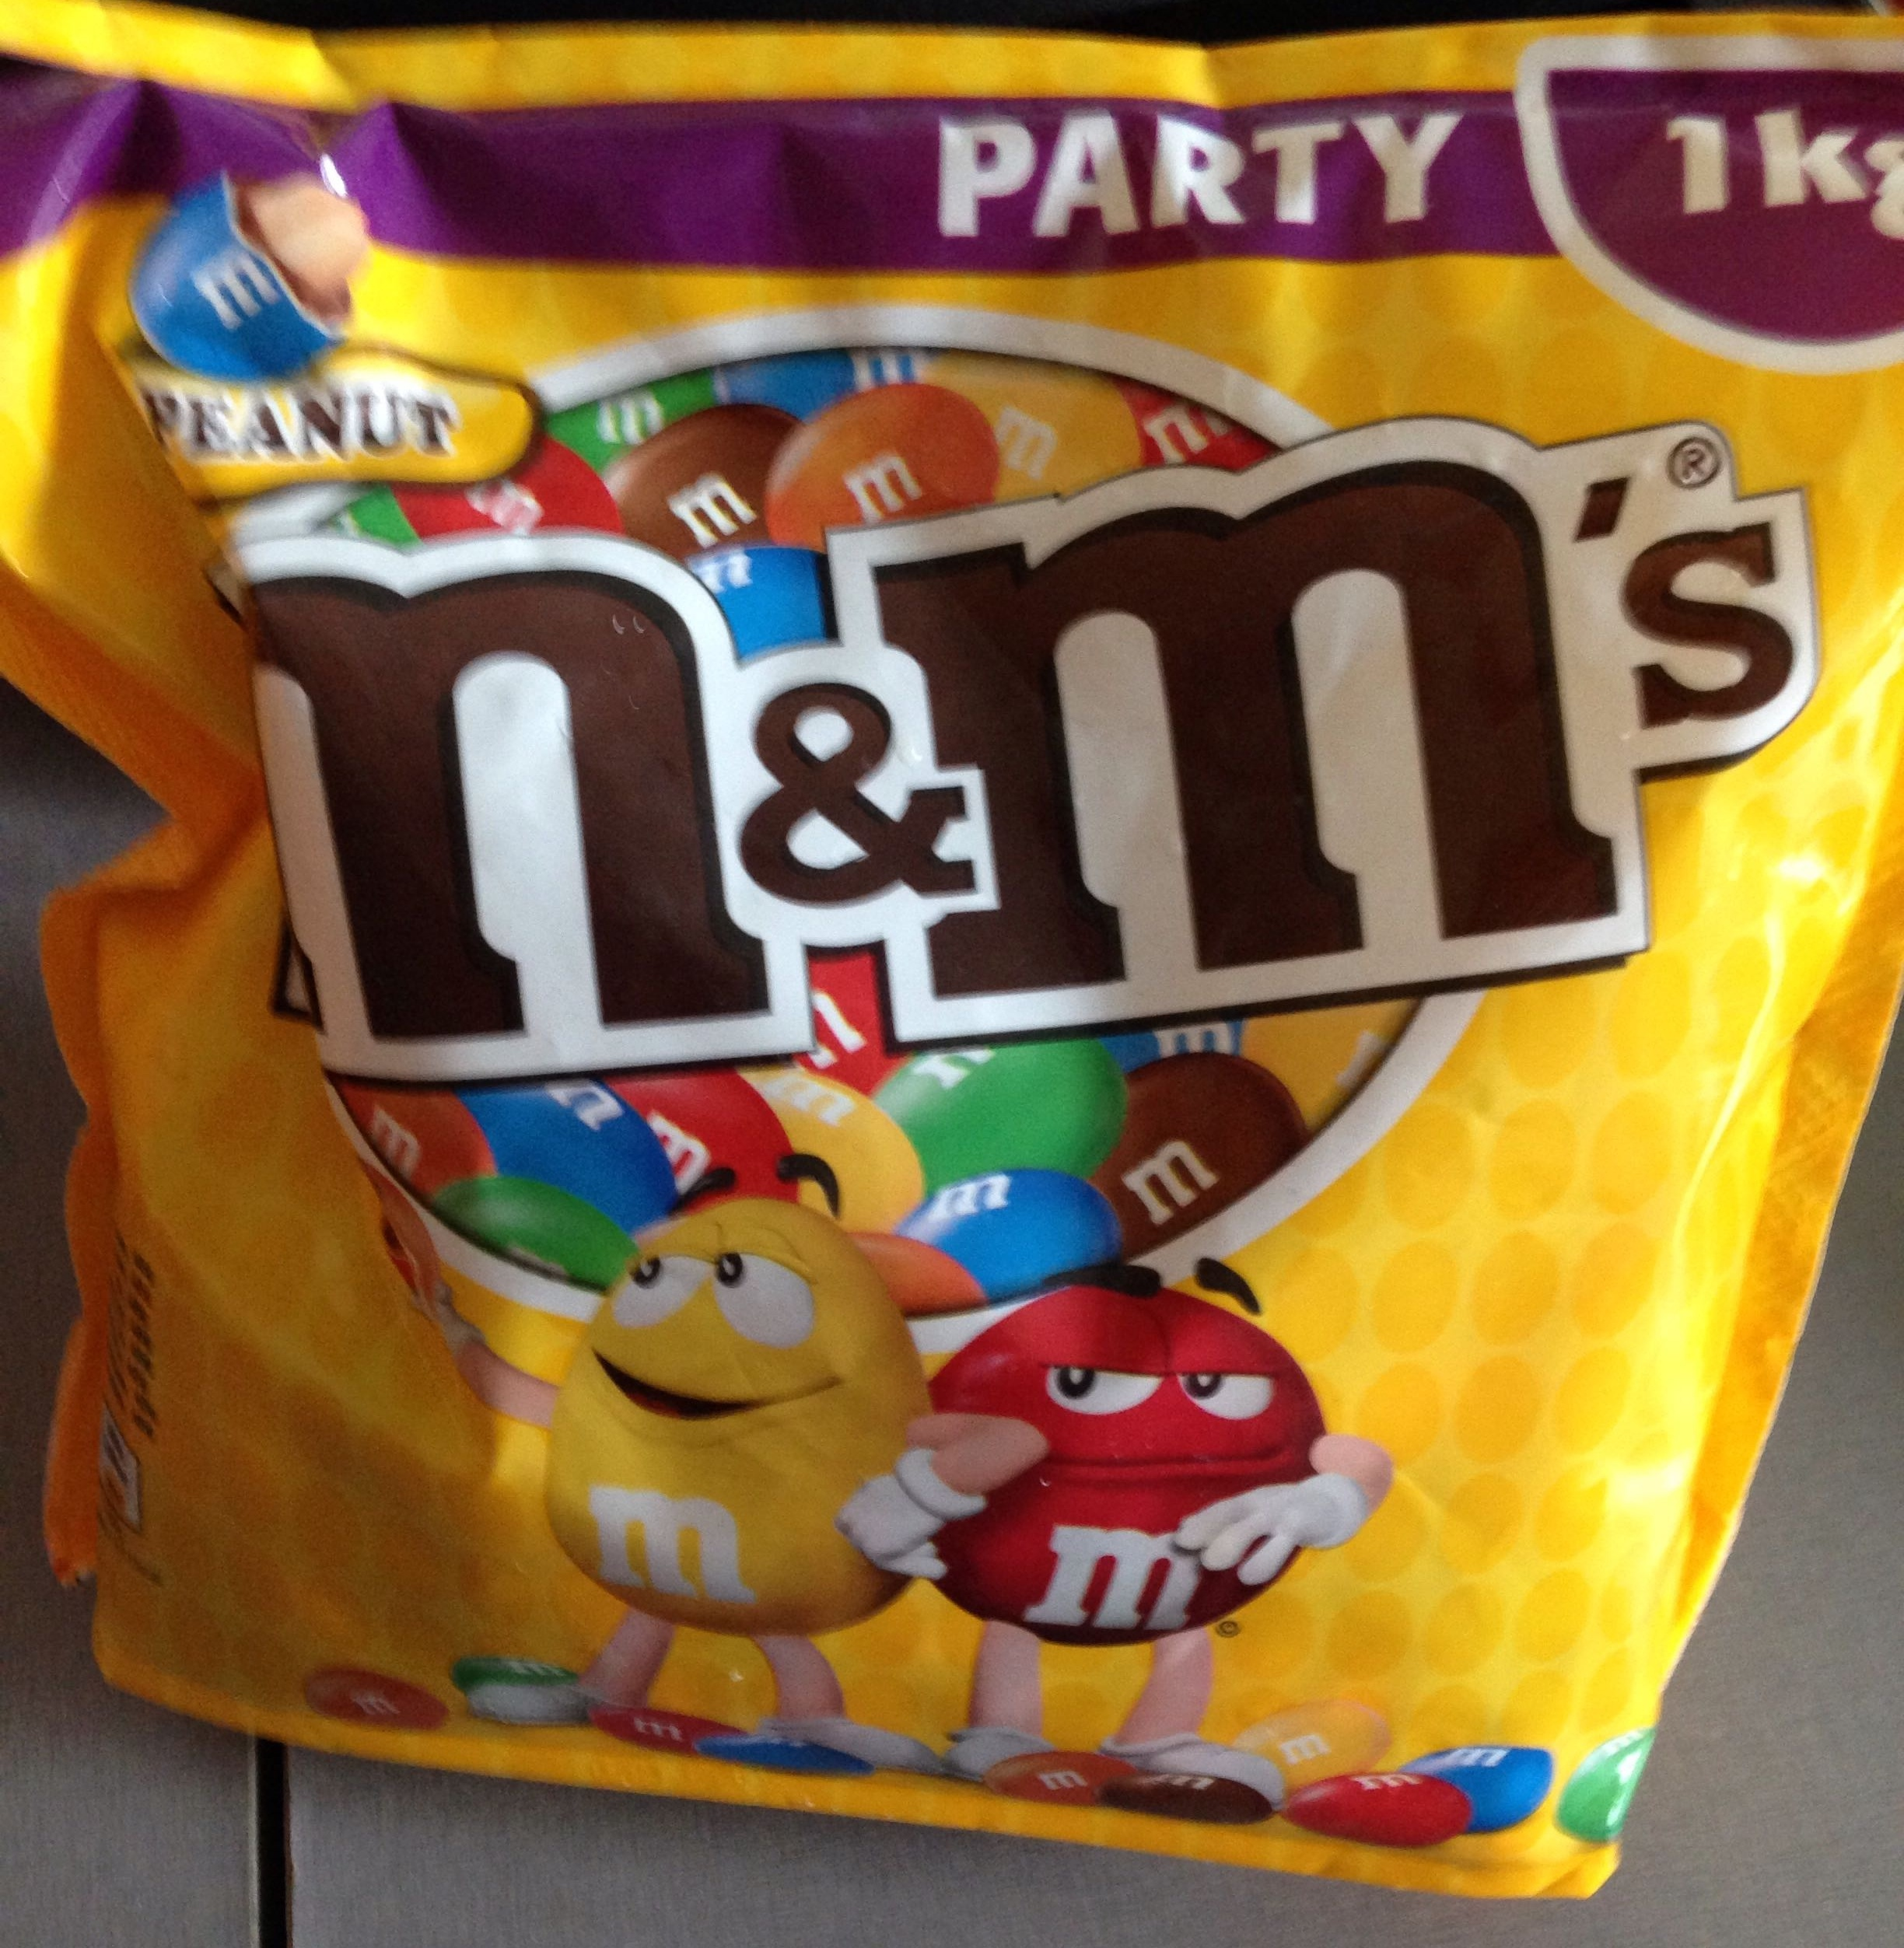 M&M's Party 1kg - Produit